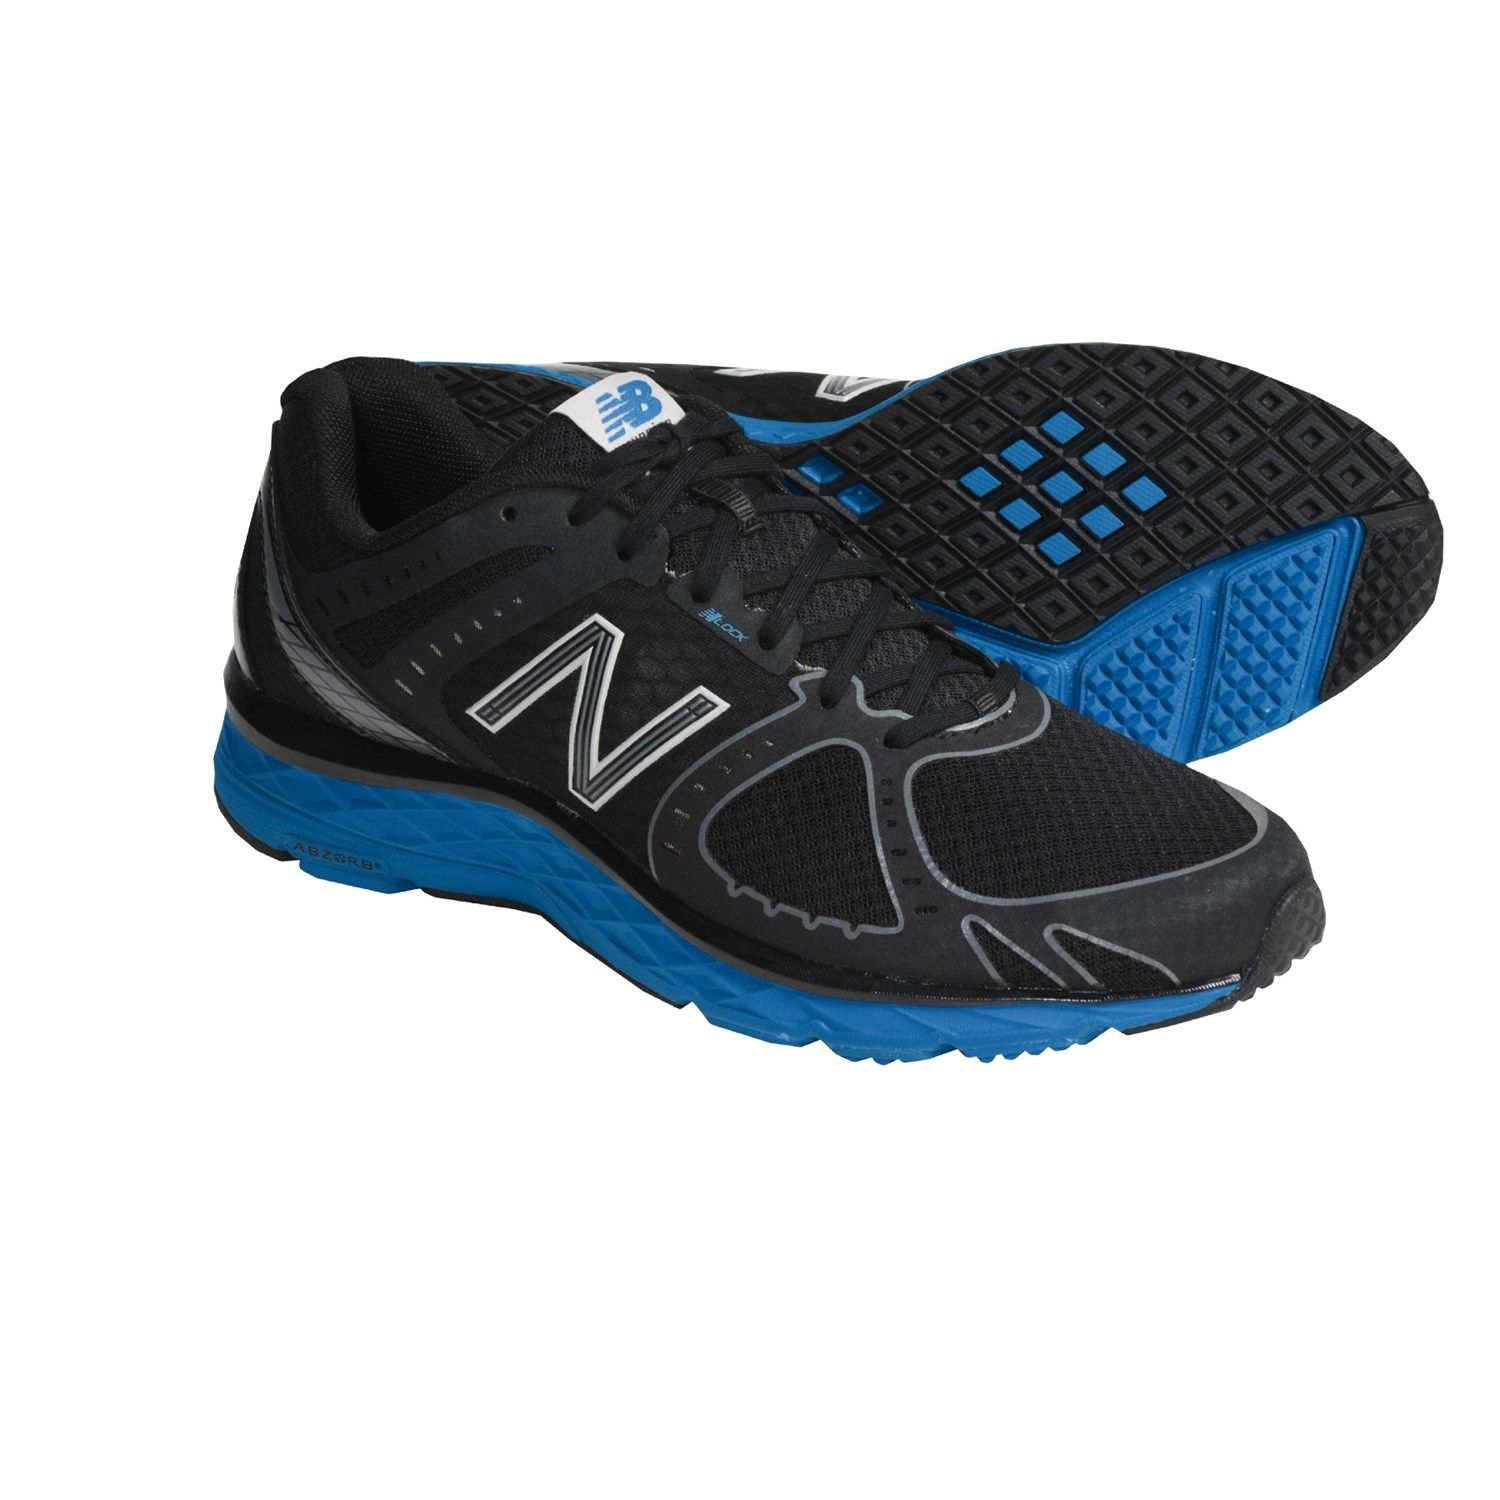 868cbc10427 New Balance 790 Running Shoes (For Men) in Black and ADD the BEST running  sock you will ever put on your feet by COVERT THREADS! Style 5180...check  them ...